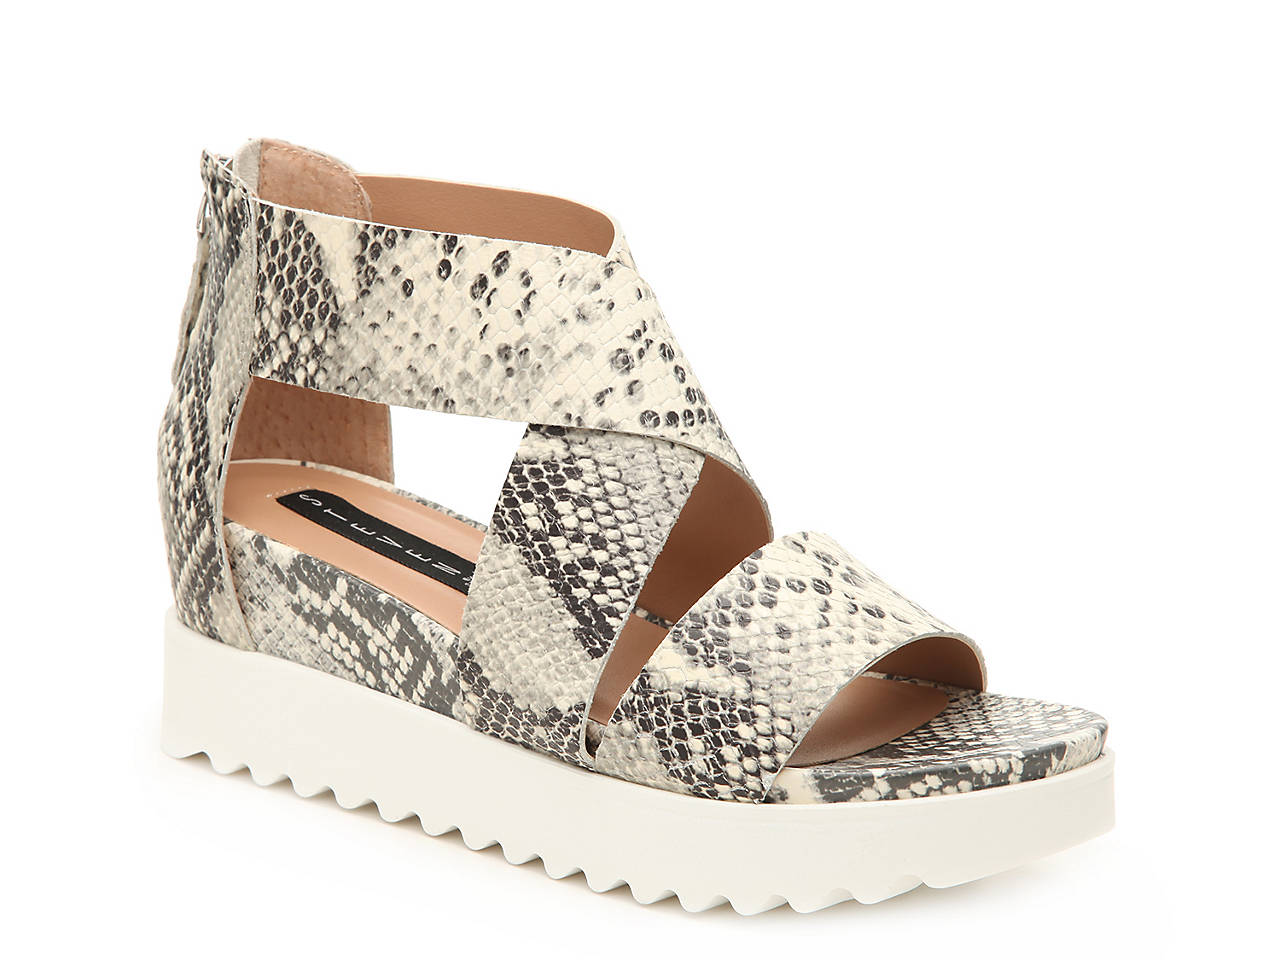 ccb0e4c3e8ca0 Steven by Steve Madden Keanna Wedge Sandal Women's Shoes | DSW